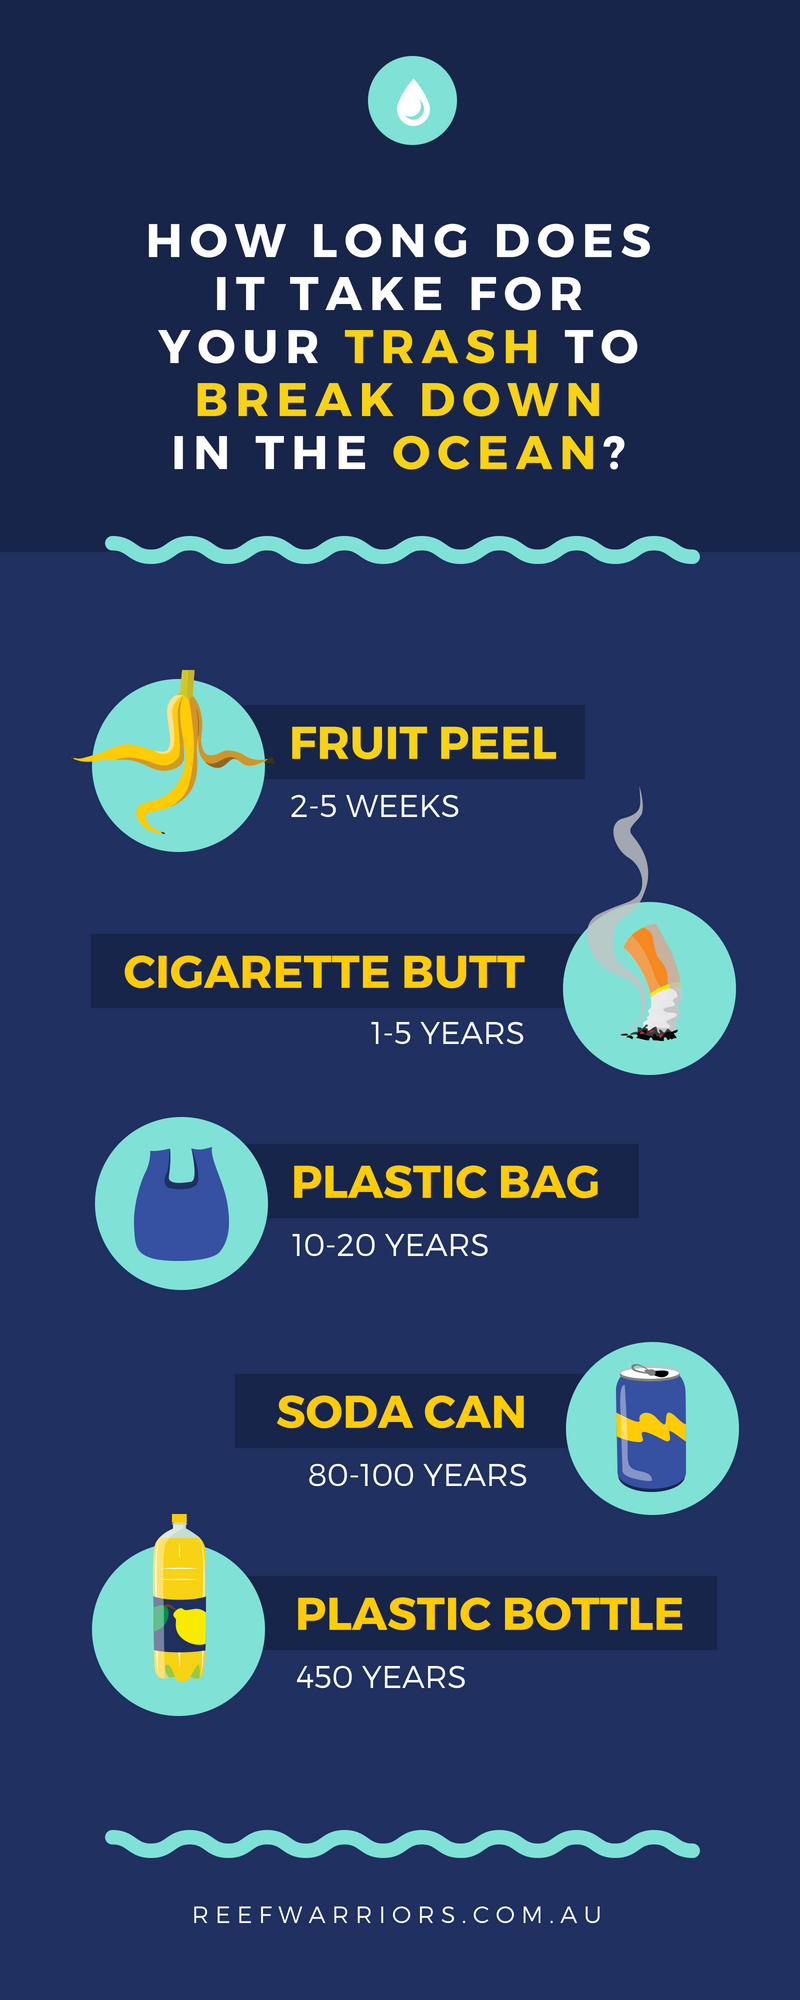 Ocean Trash Breakdown Infographic